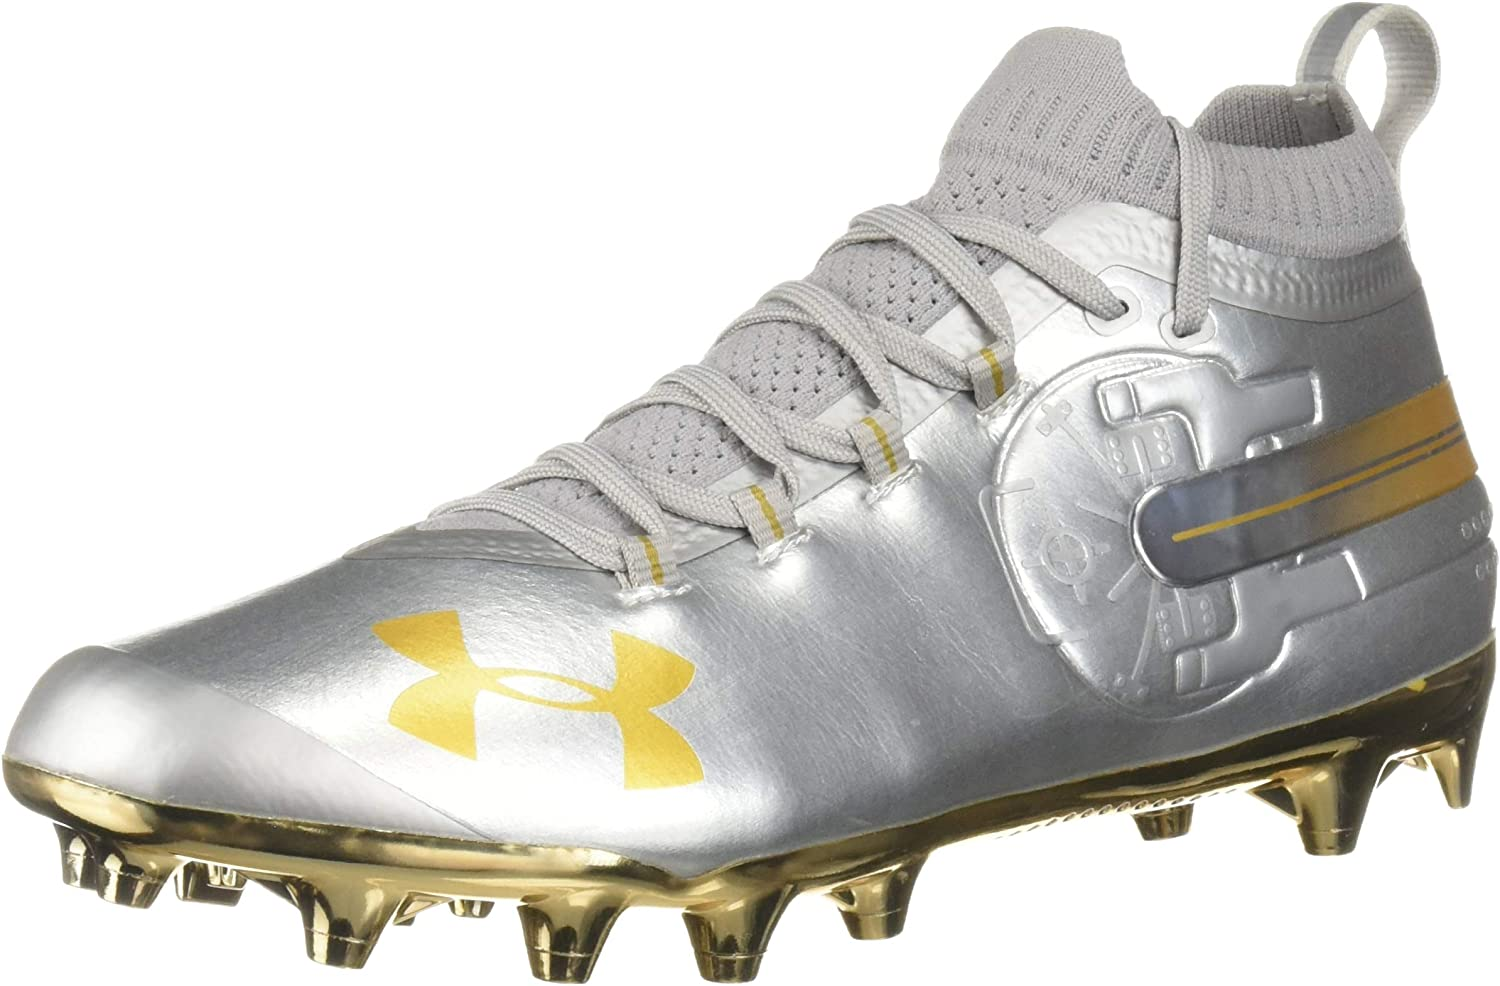 Under Armour Men's Spotlight-Limited Edition Football Shoe, 銀 (100)/Metallic ゴールド, 10